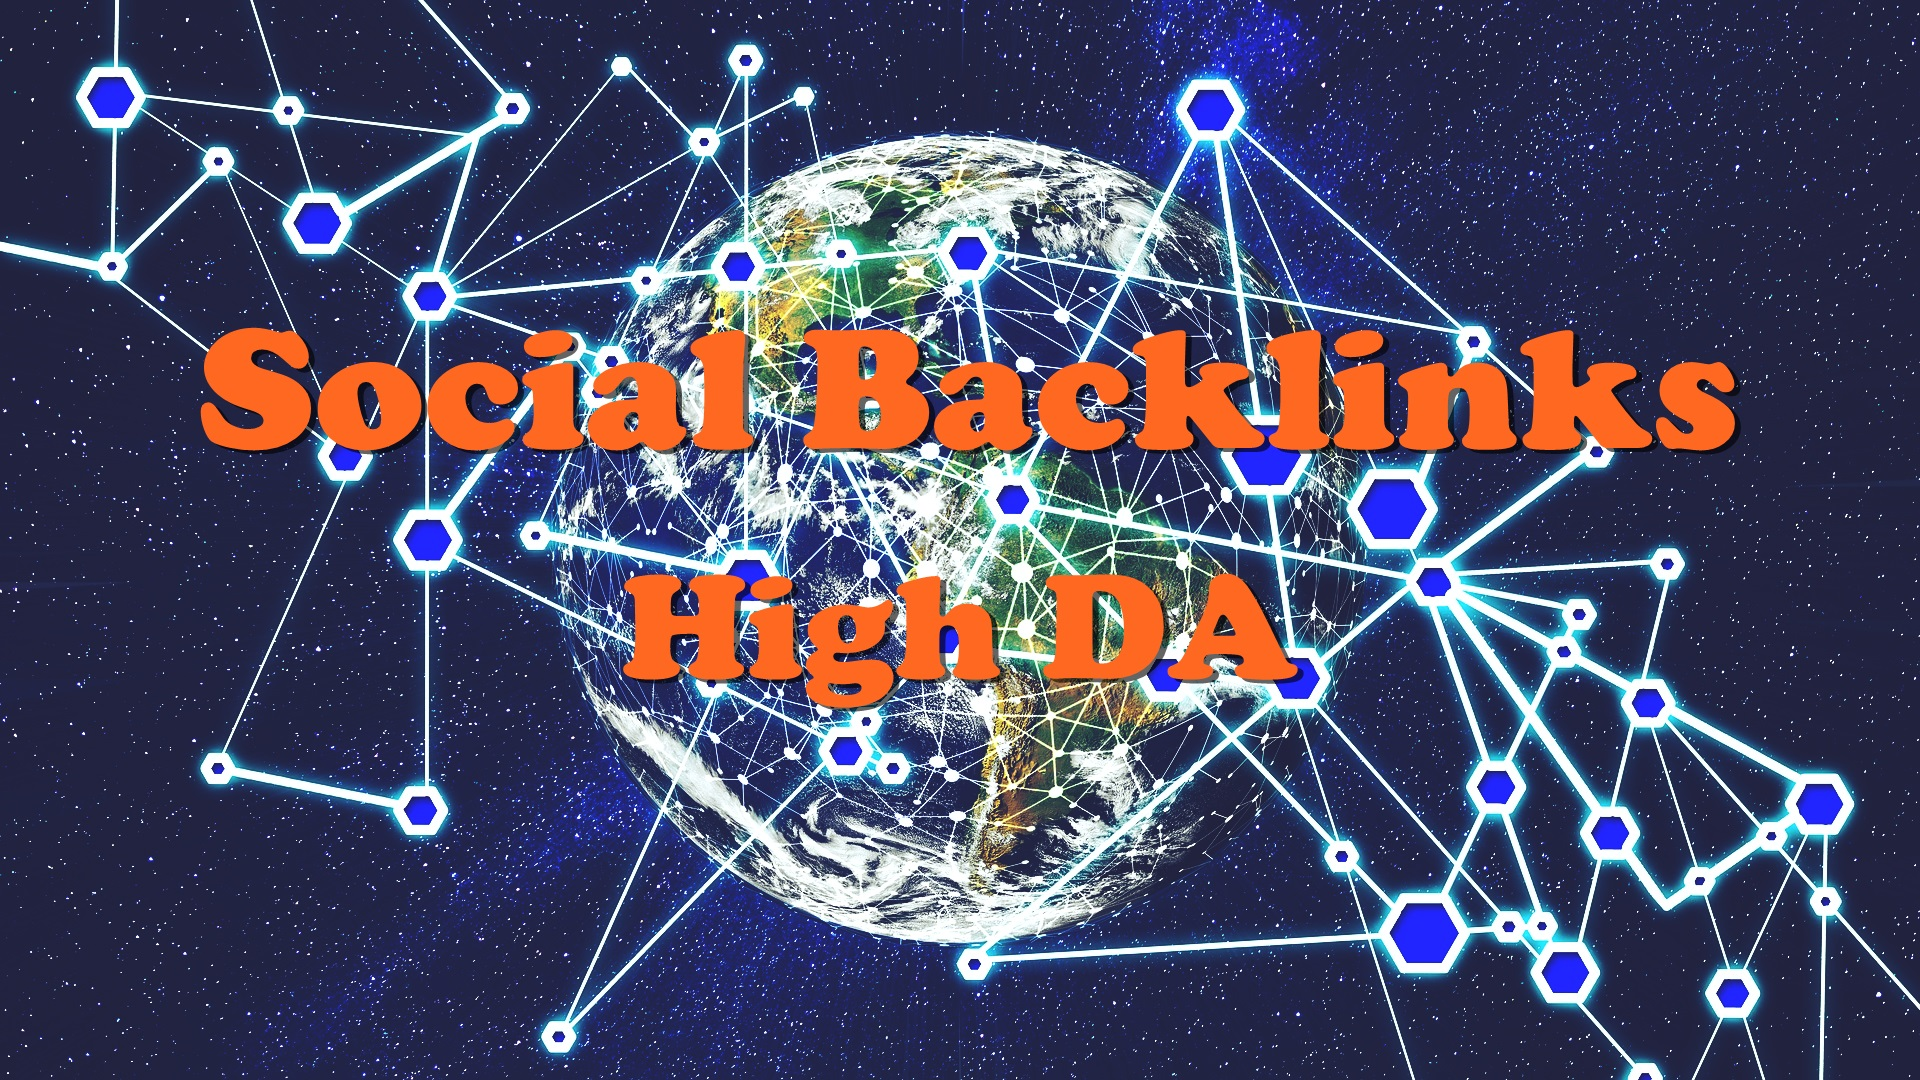 Manual 30 Social Backlinks High DA and Dofollow